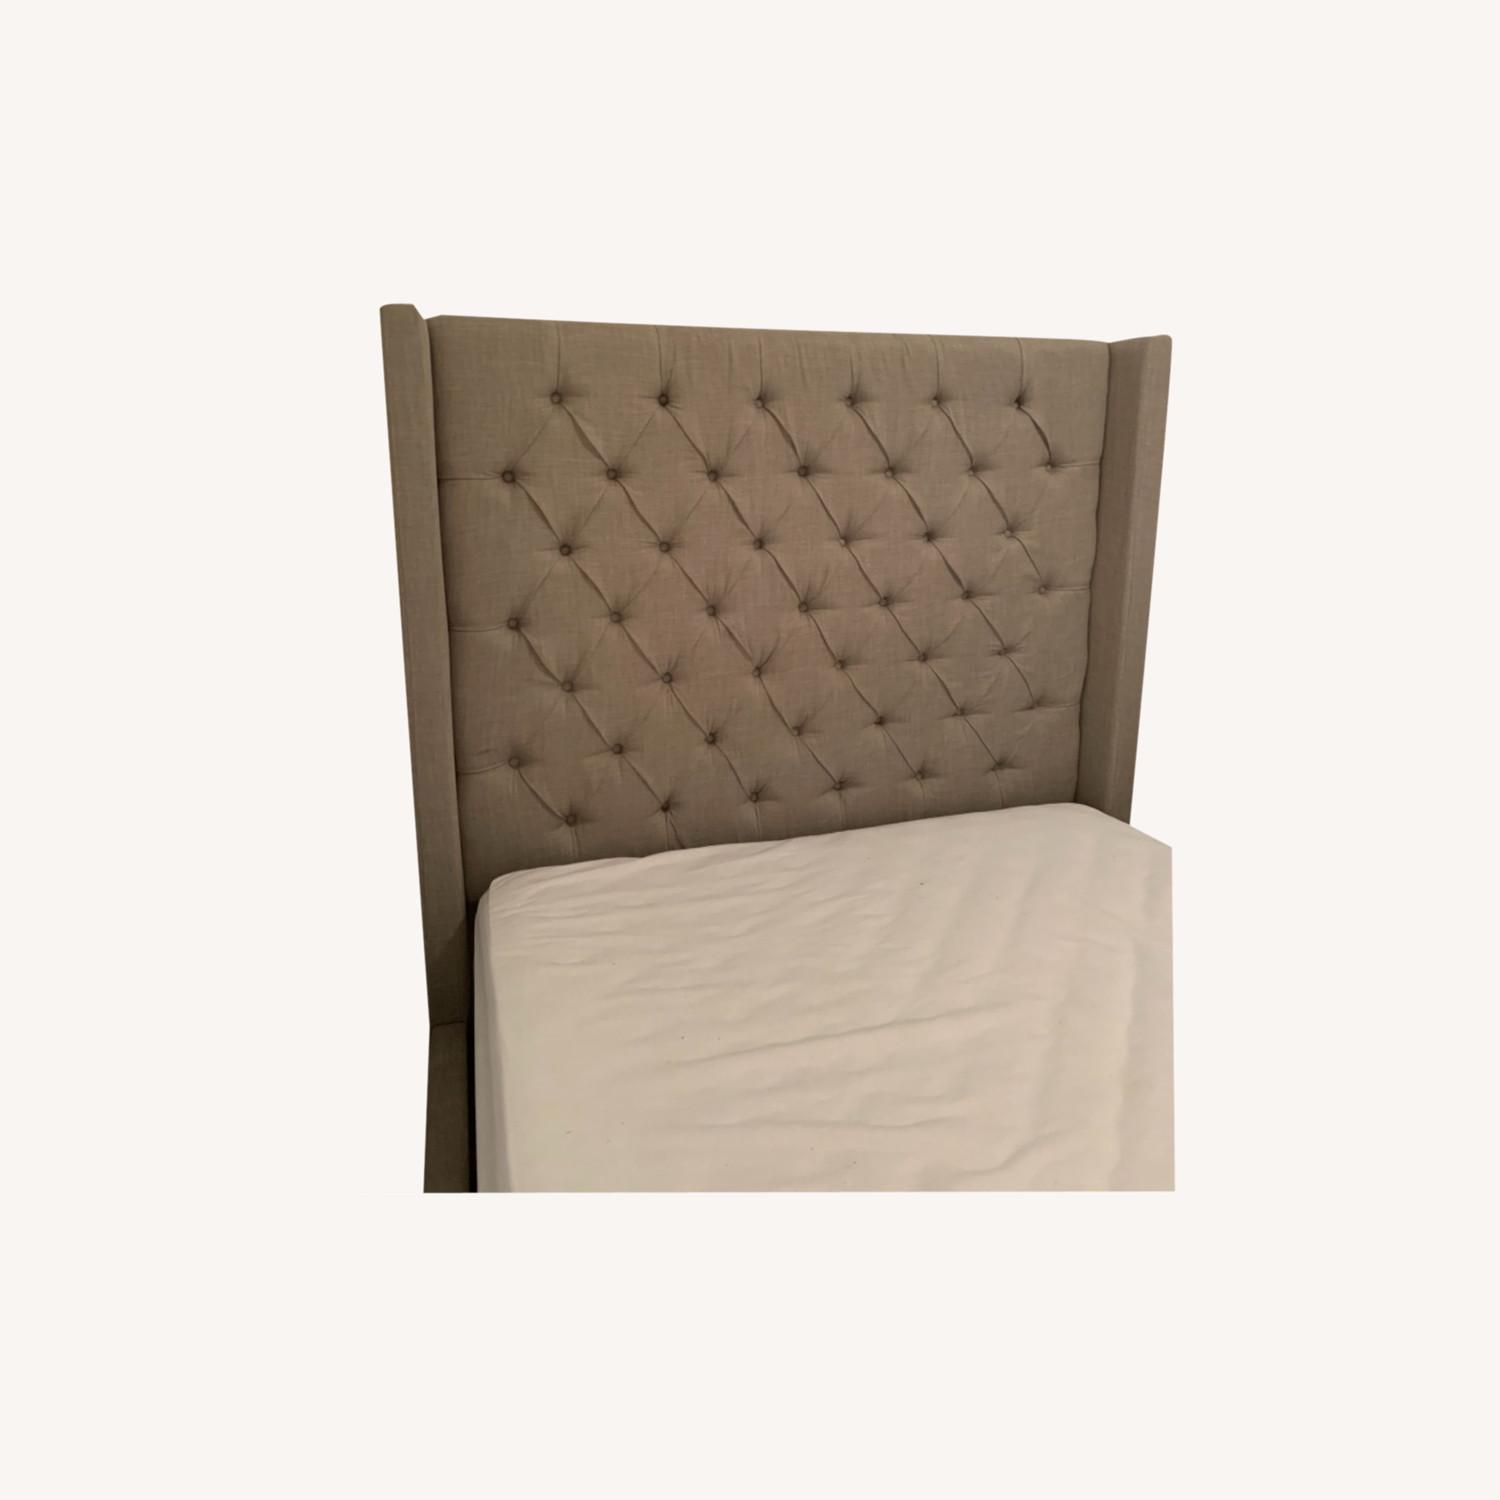 Tufted Grey Headboard for Queen Bed - image-0